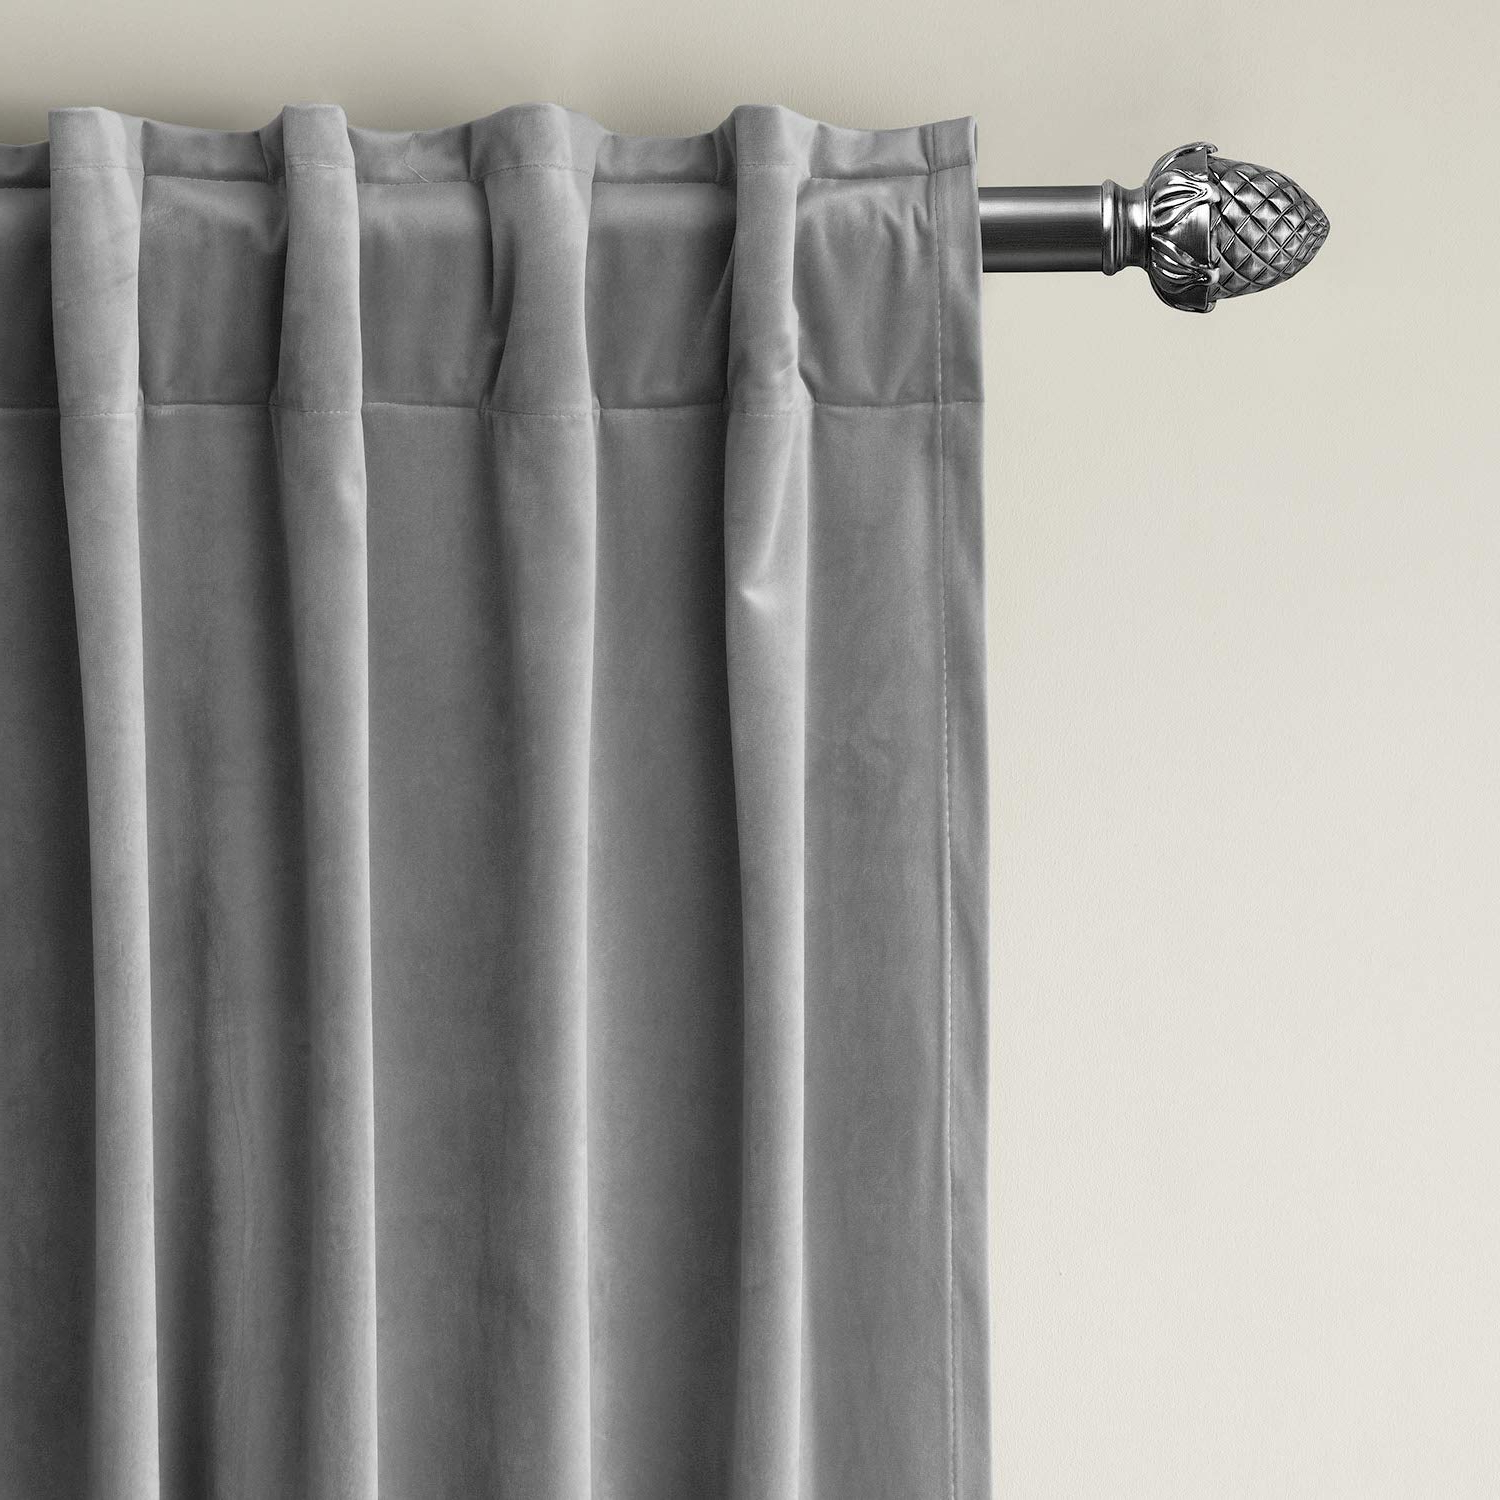 Velvet Dream Silver Curtain Panel Pairs Intended For 2021 Chadmade Set Of 2 Solid Matt Velvet Curtain Panel Drapes Back Tab/rod Pocket Grey 50w X 96l Inch Each, Birkin Collection (View 9 of 20)